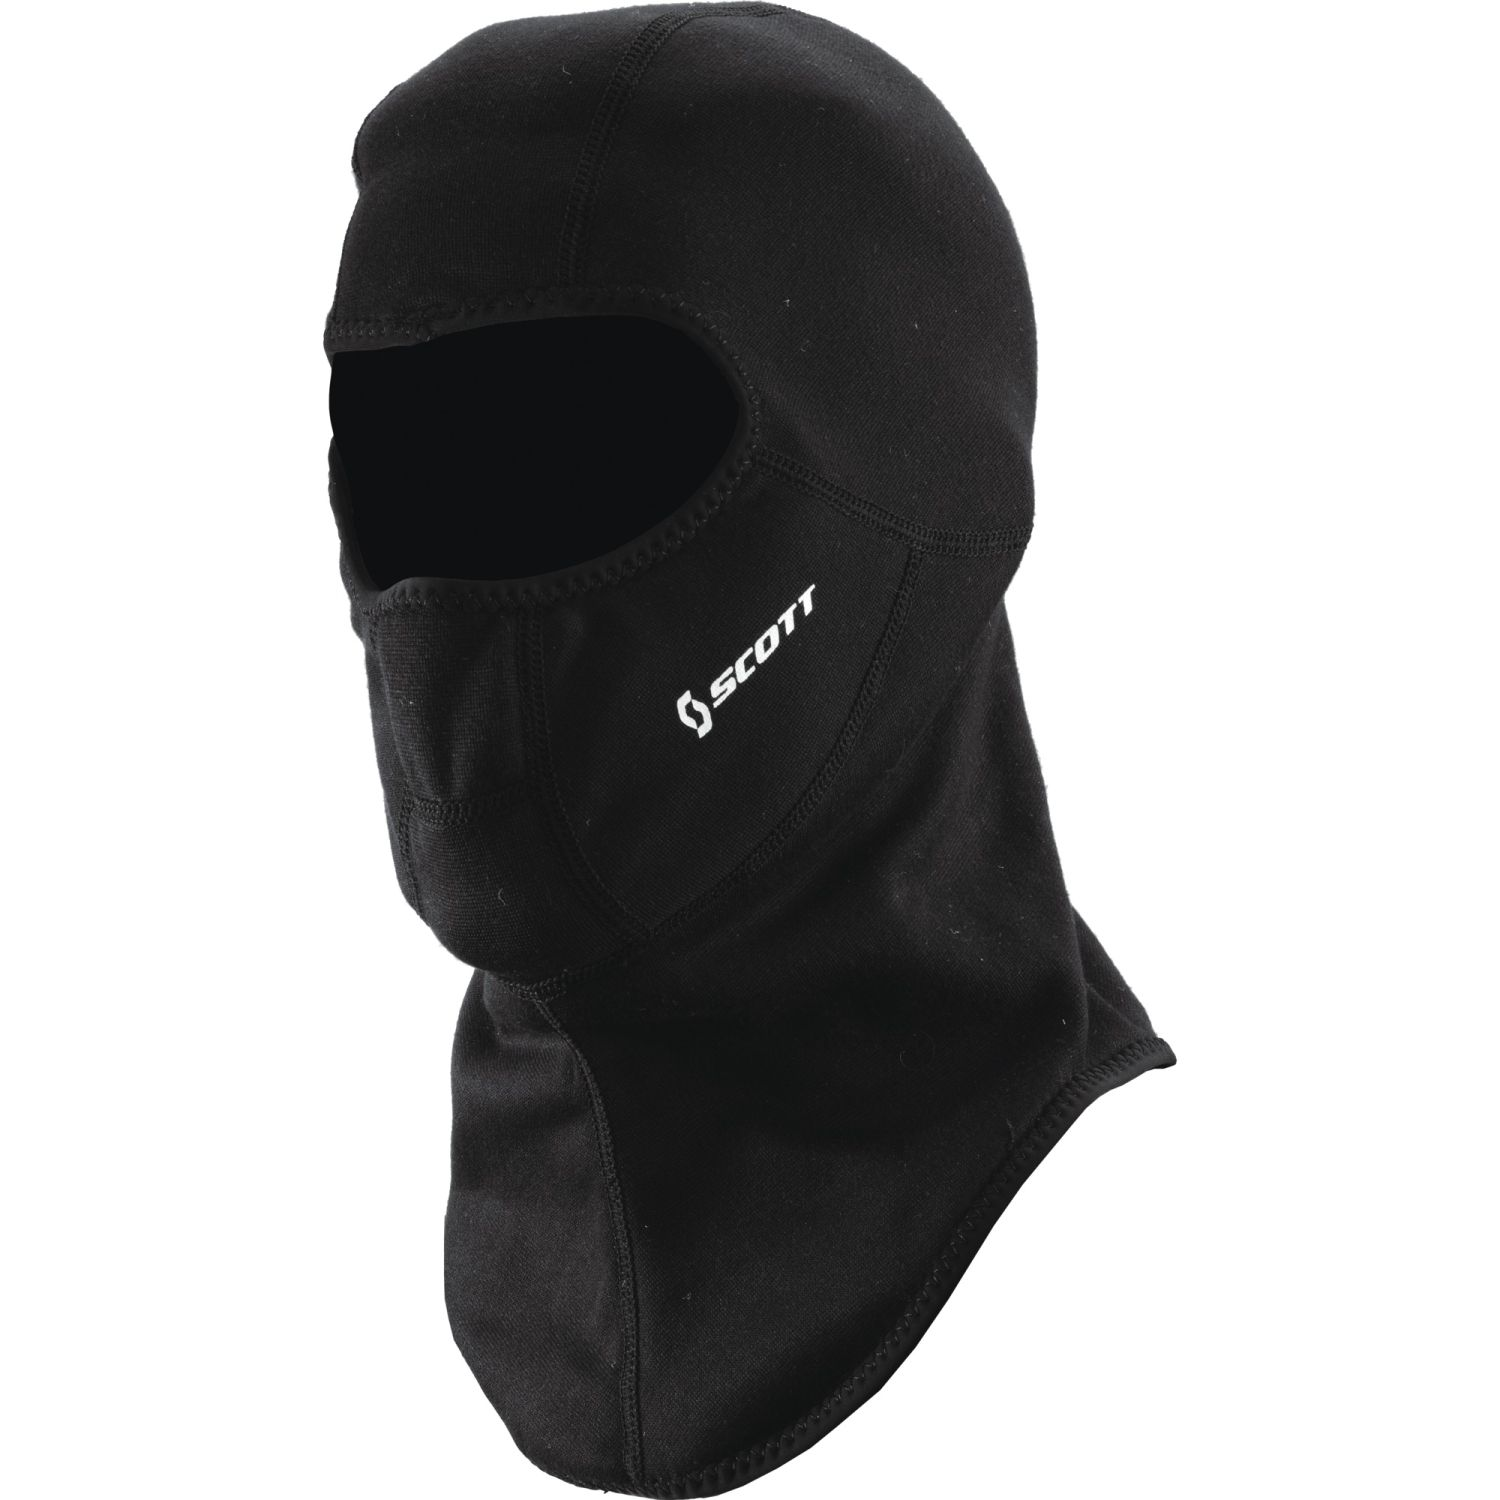 SCOTT kukla  Facemask Balaclava open